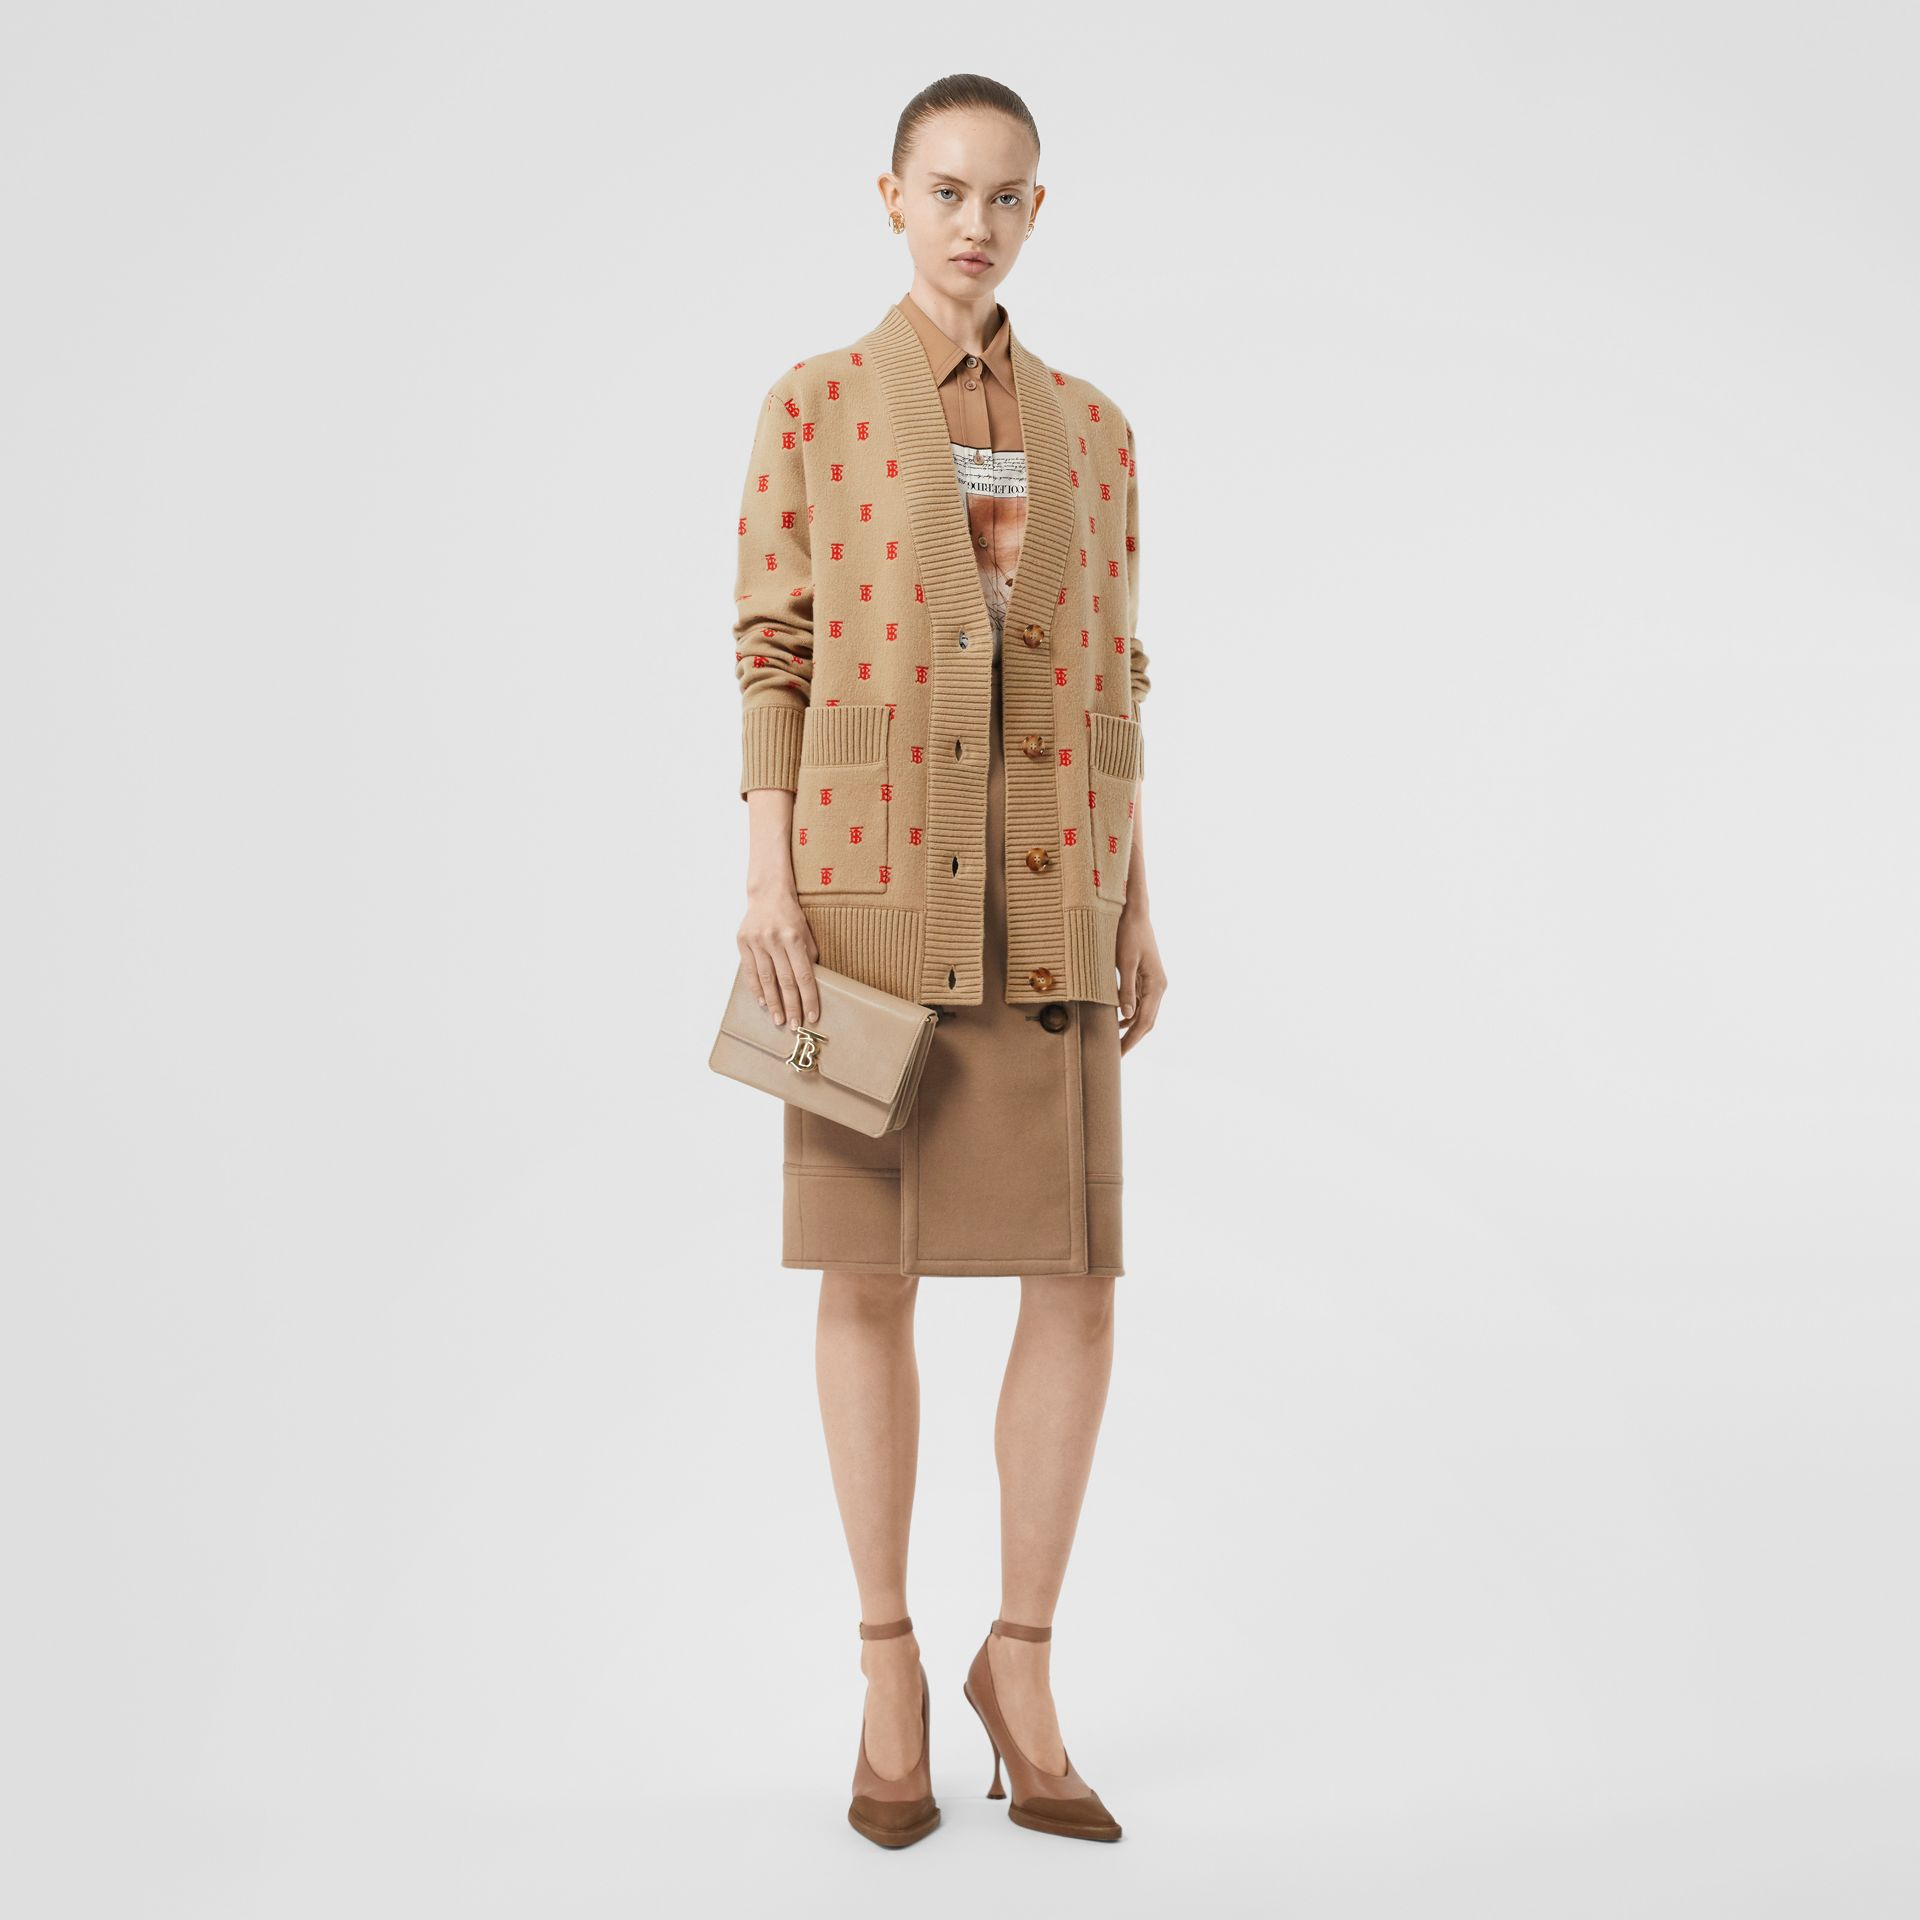 Monogram Wool Cashmere Blend Oversized Cardigan in Archive Beige - Women | Burberry United States - gallery image 6